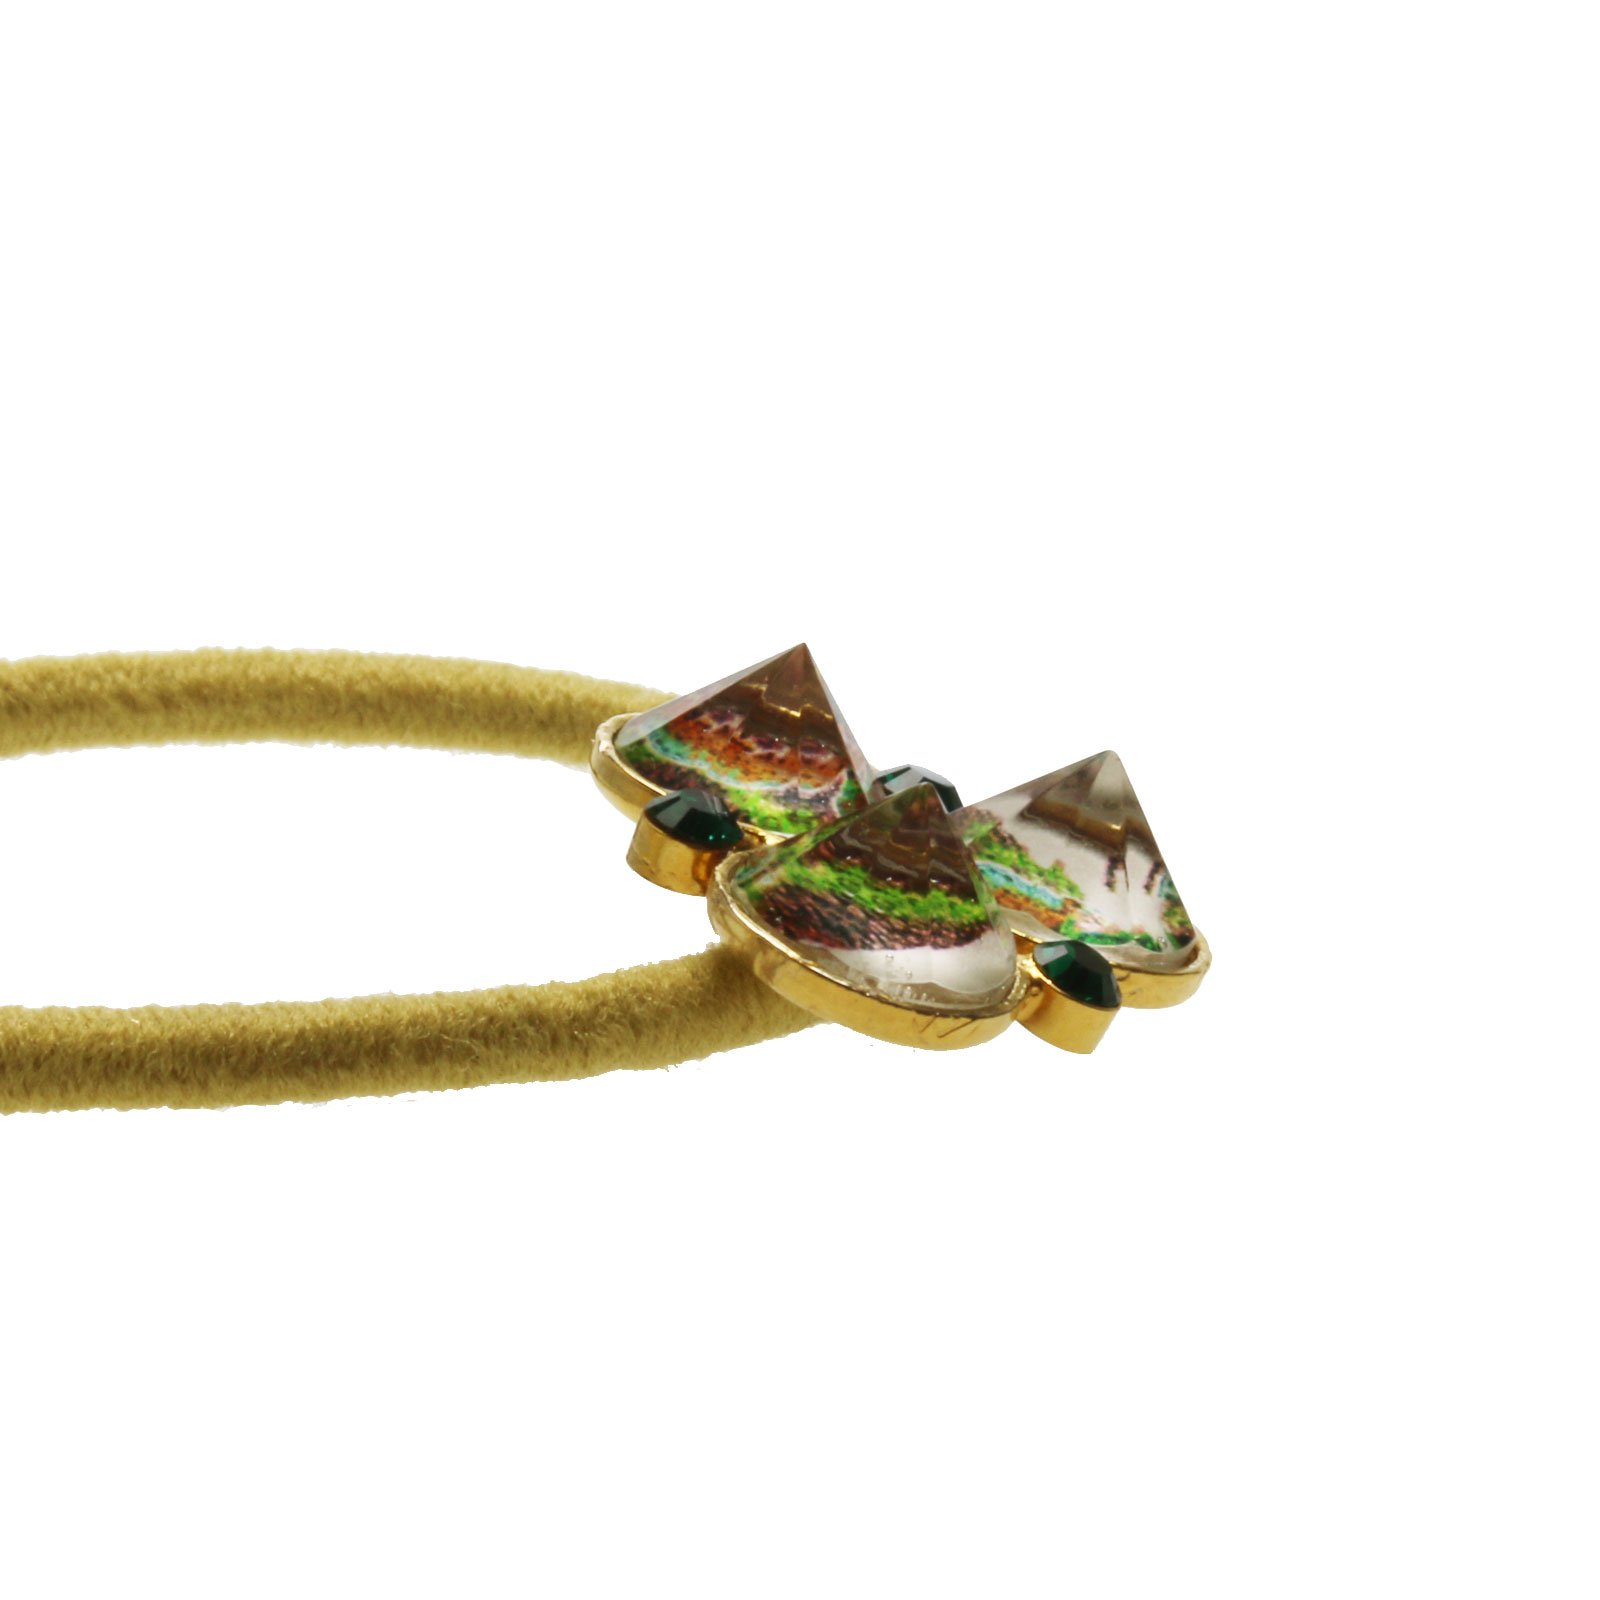 Tamarusan Ponytail Holder Small Size Pansy Yellow Green Unisex High-Grade by TAMARUSAN (Image #2)